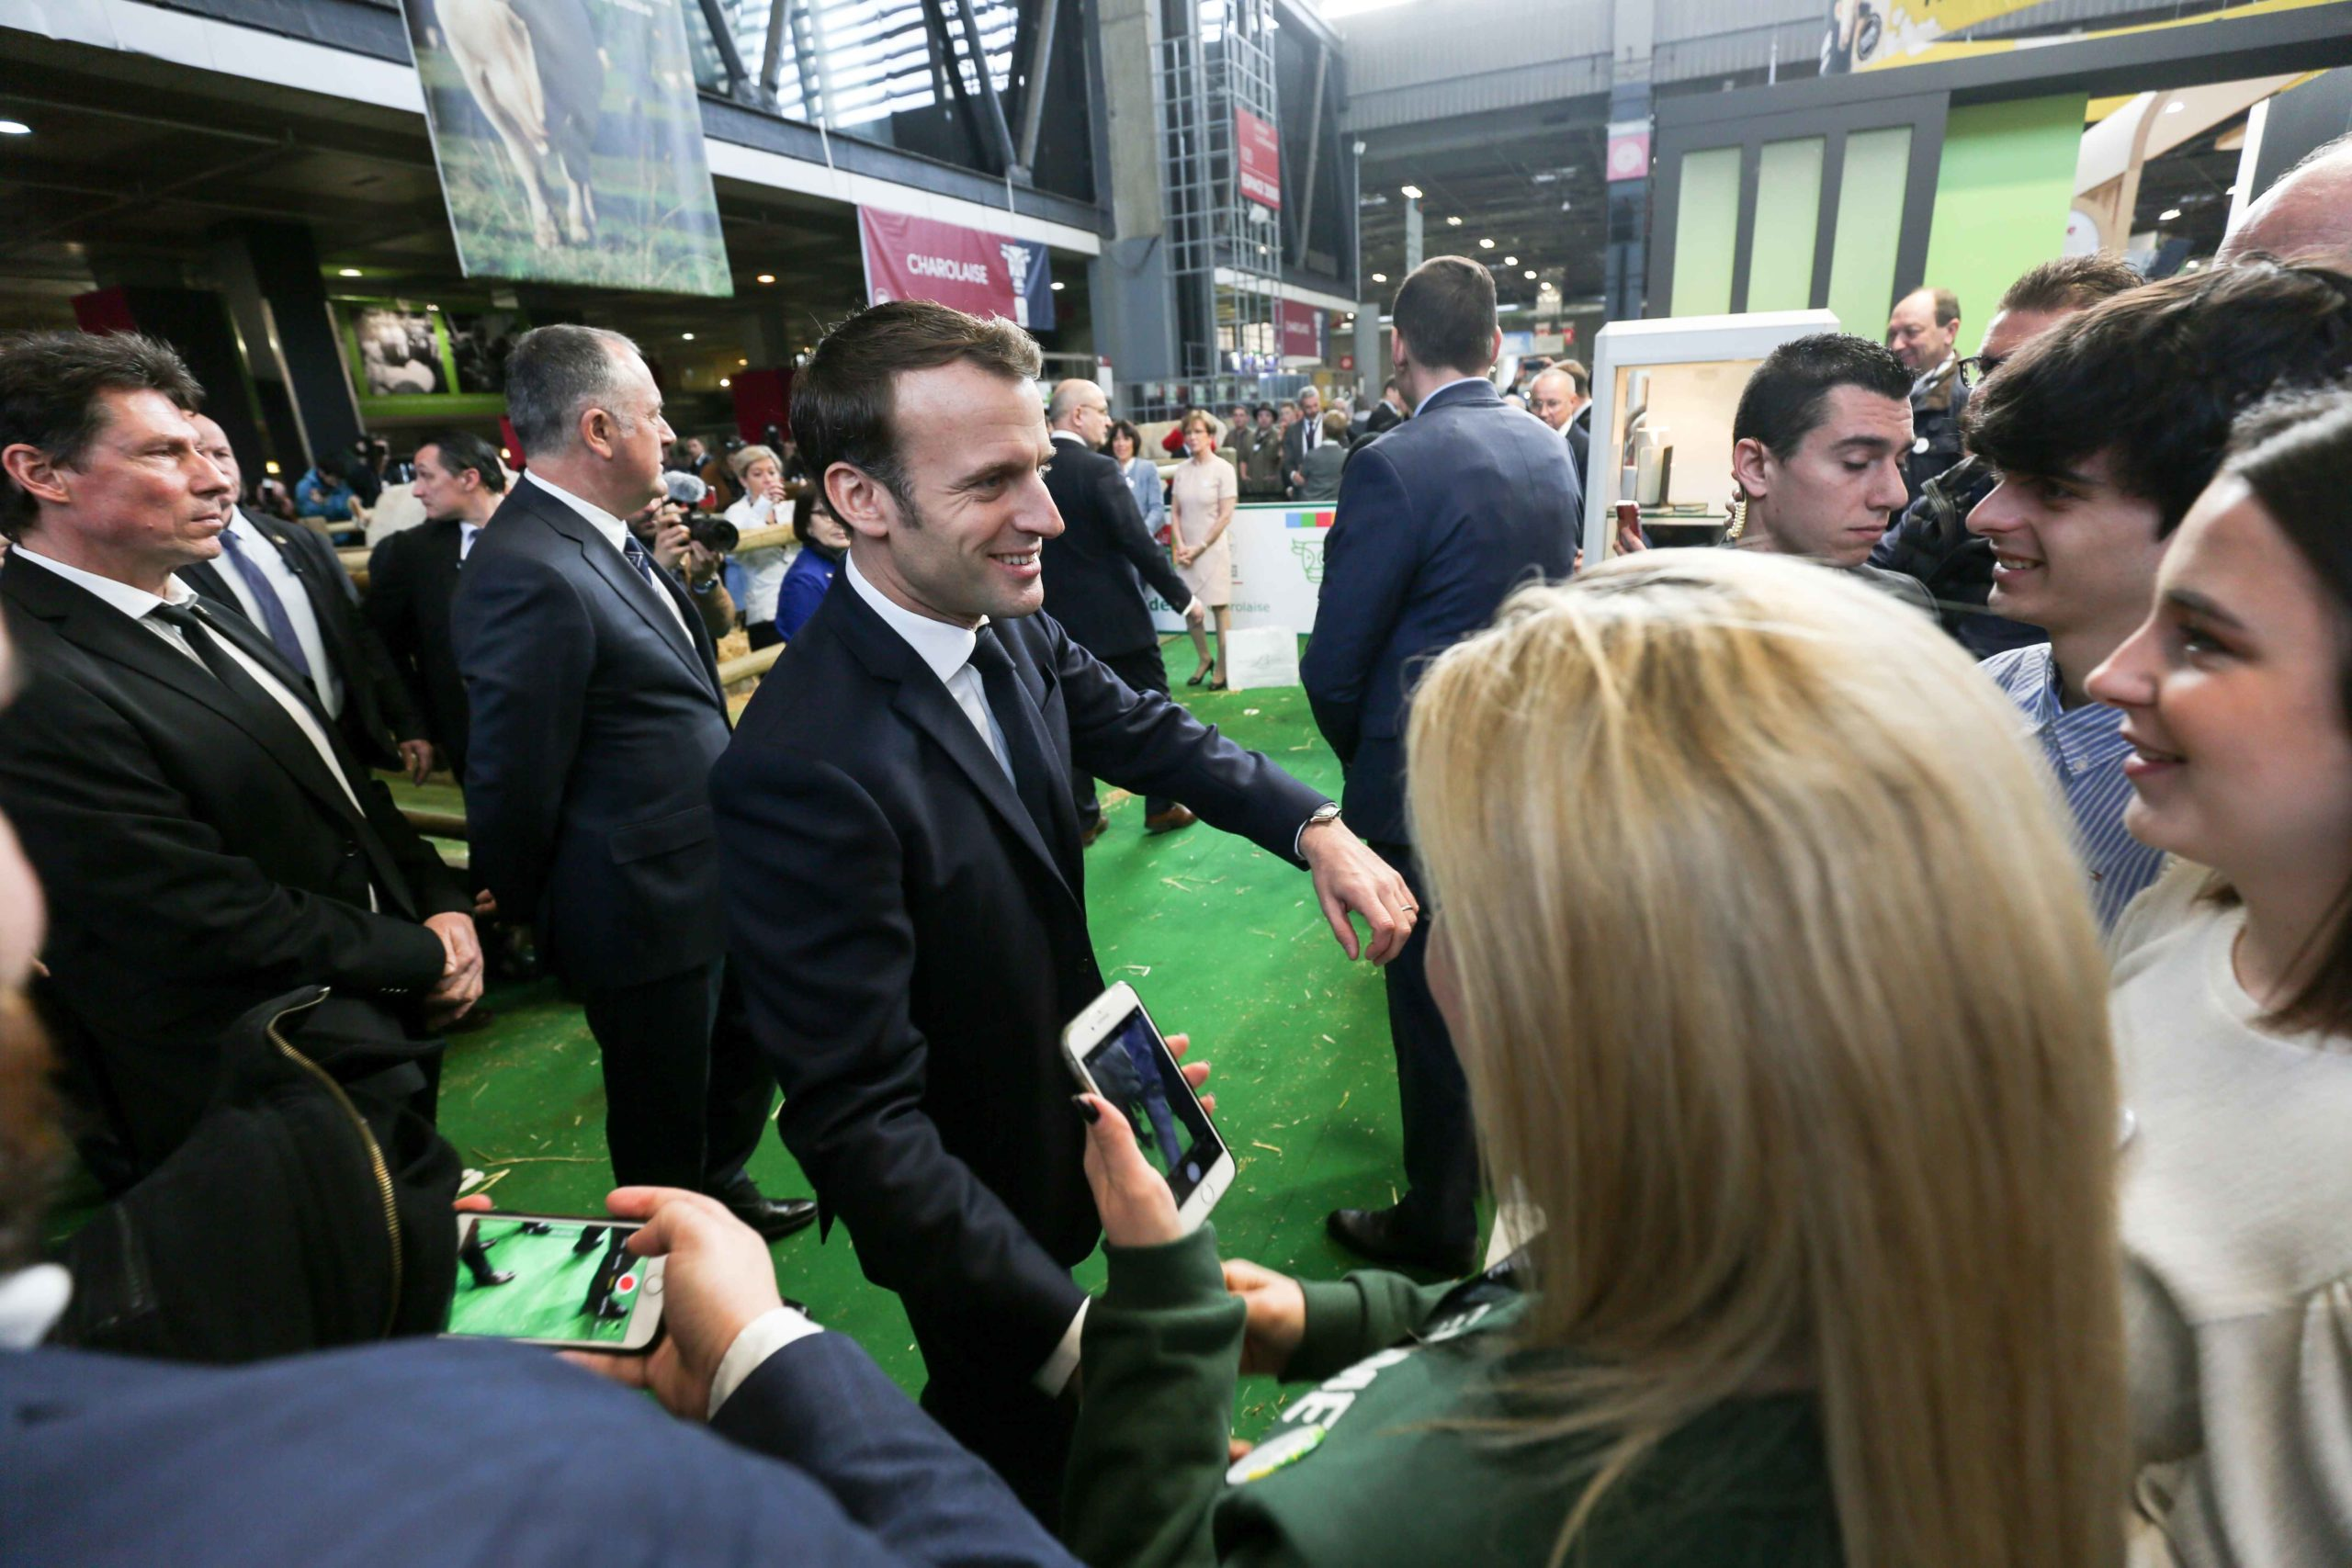 French President Emmanuel Macron (C) visits the 57th International Agriculture Fair (Salon de l'Agriculture) at the Porte de Versailles exhibition center in Paris, France, on February 22, 2020.